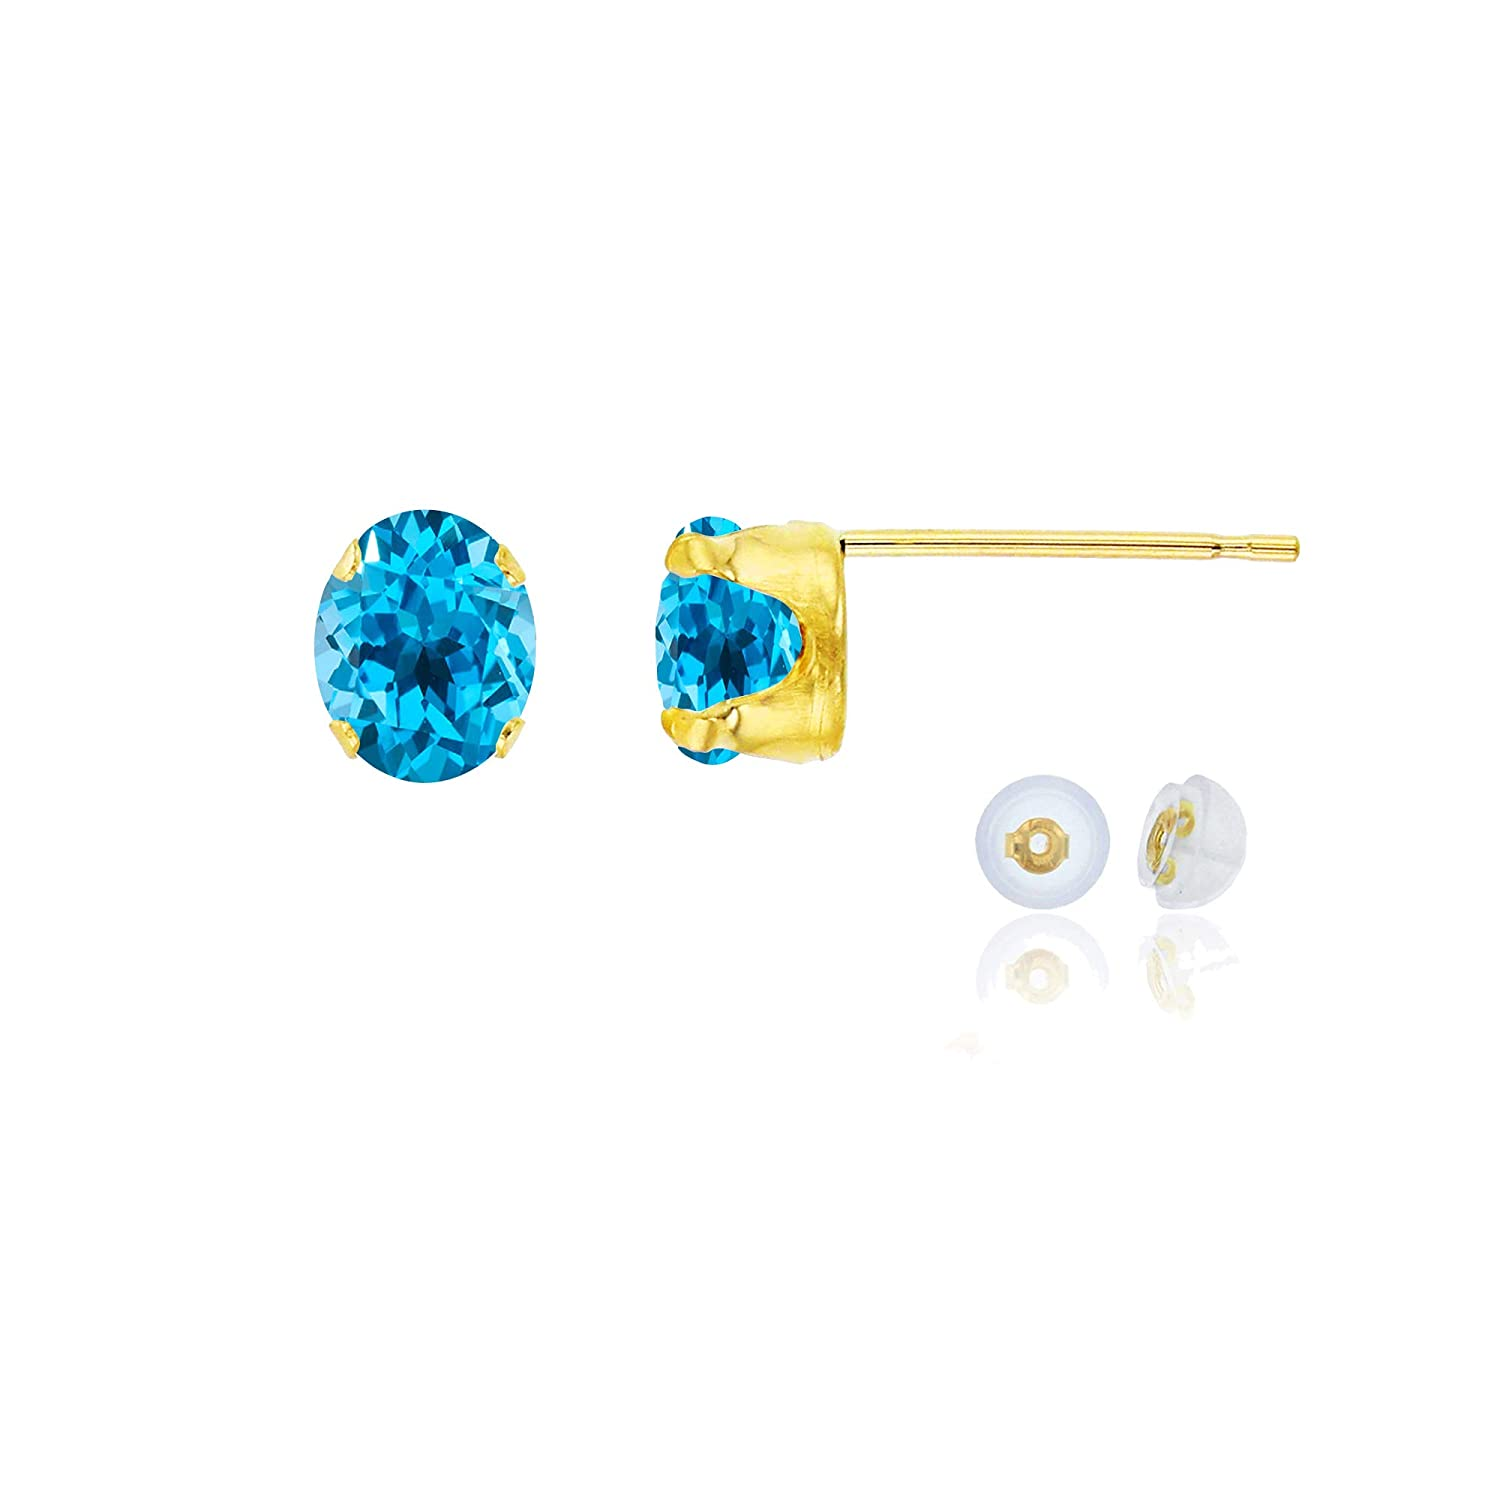 White or Rose Gold 6x4mm Oval Genuine Or Created Gemstone Birthstone Stud Earrings Solid 10K Yellow